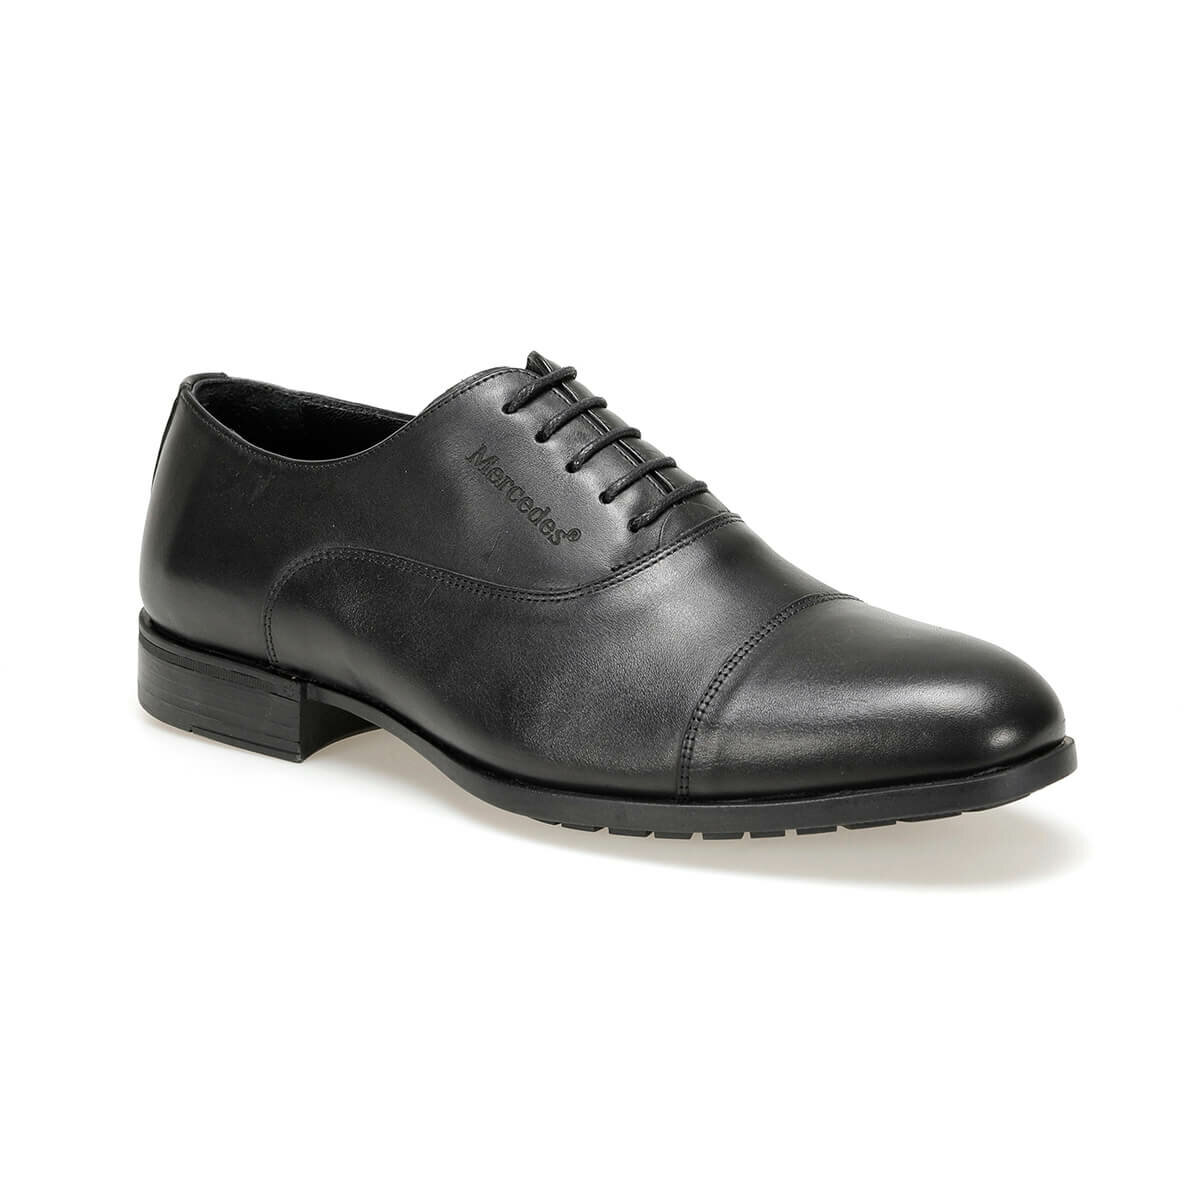 FLO SUTTON 9PR Black Men 'S Classic Shoes MERCEDES